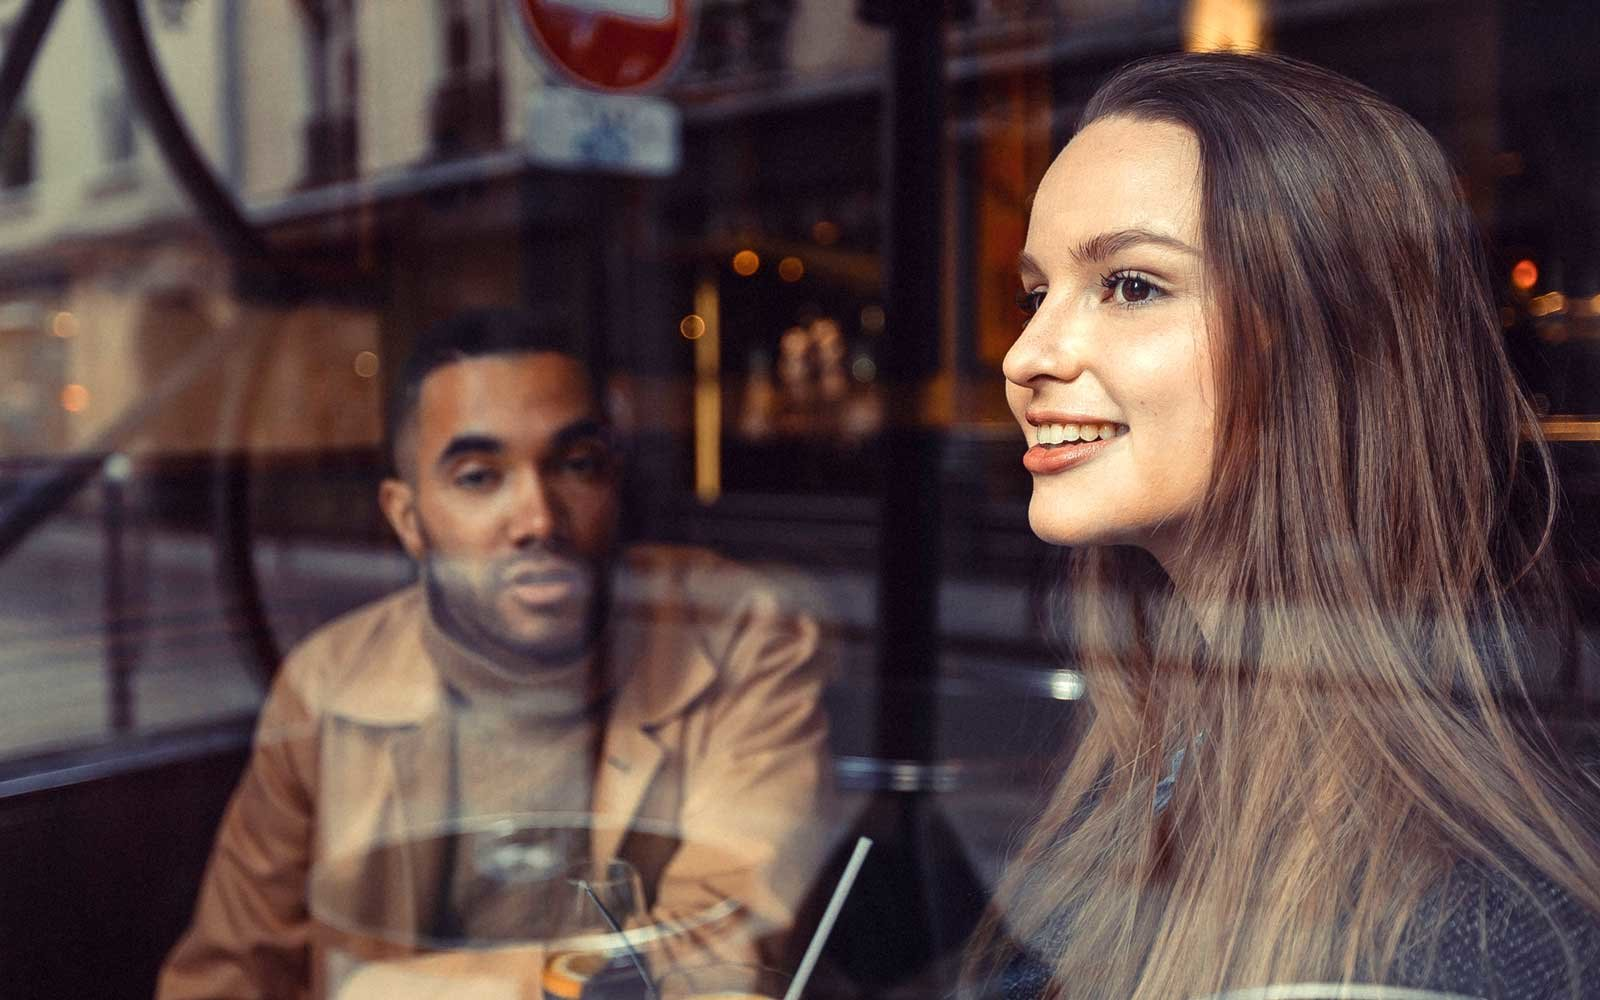 A young couple having conversation at a Cafe in Paris, France.